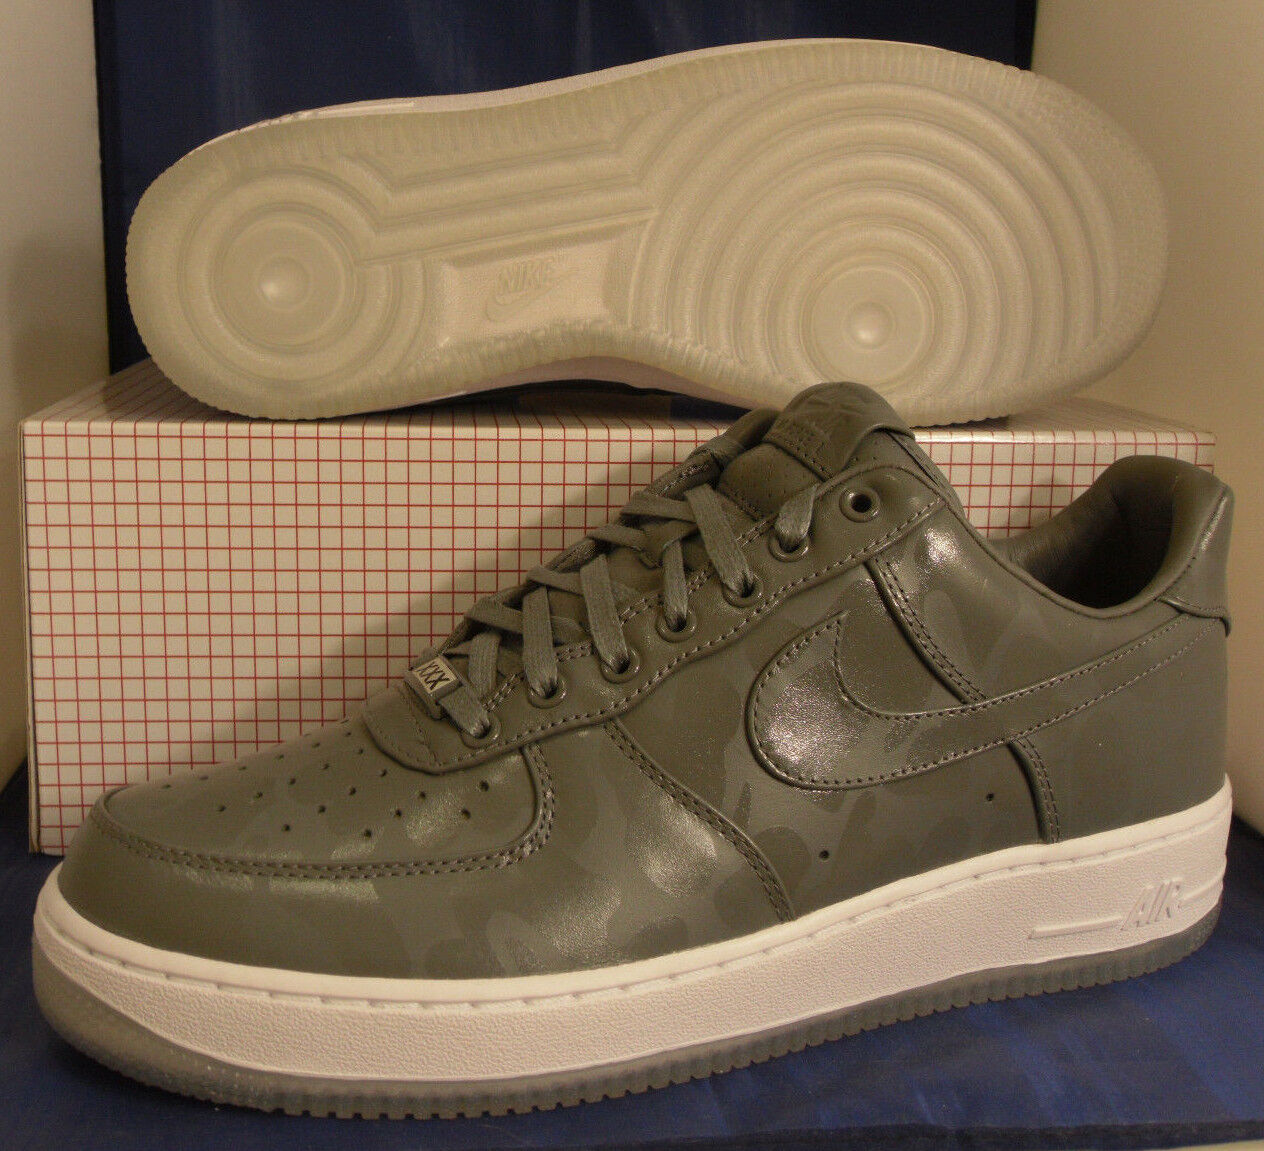 nike air force 1 faible faible faible cmft prime qs cool Gris  acom pmr sz 10.5 (573974-002) 41deed